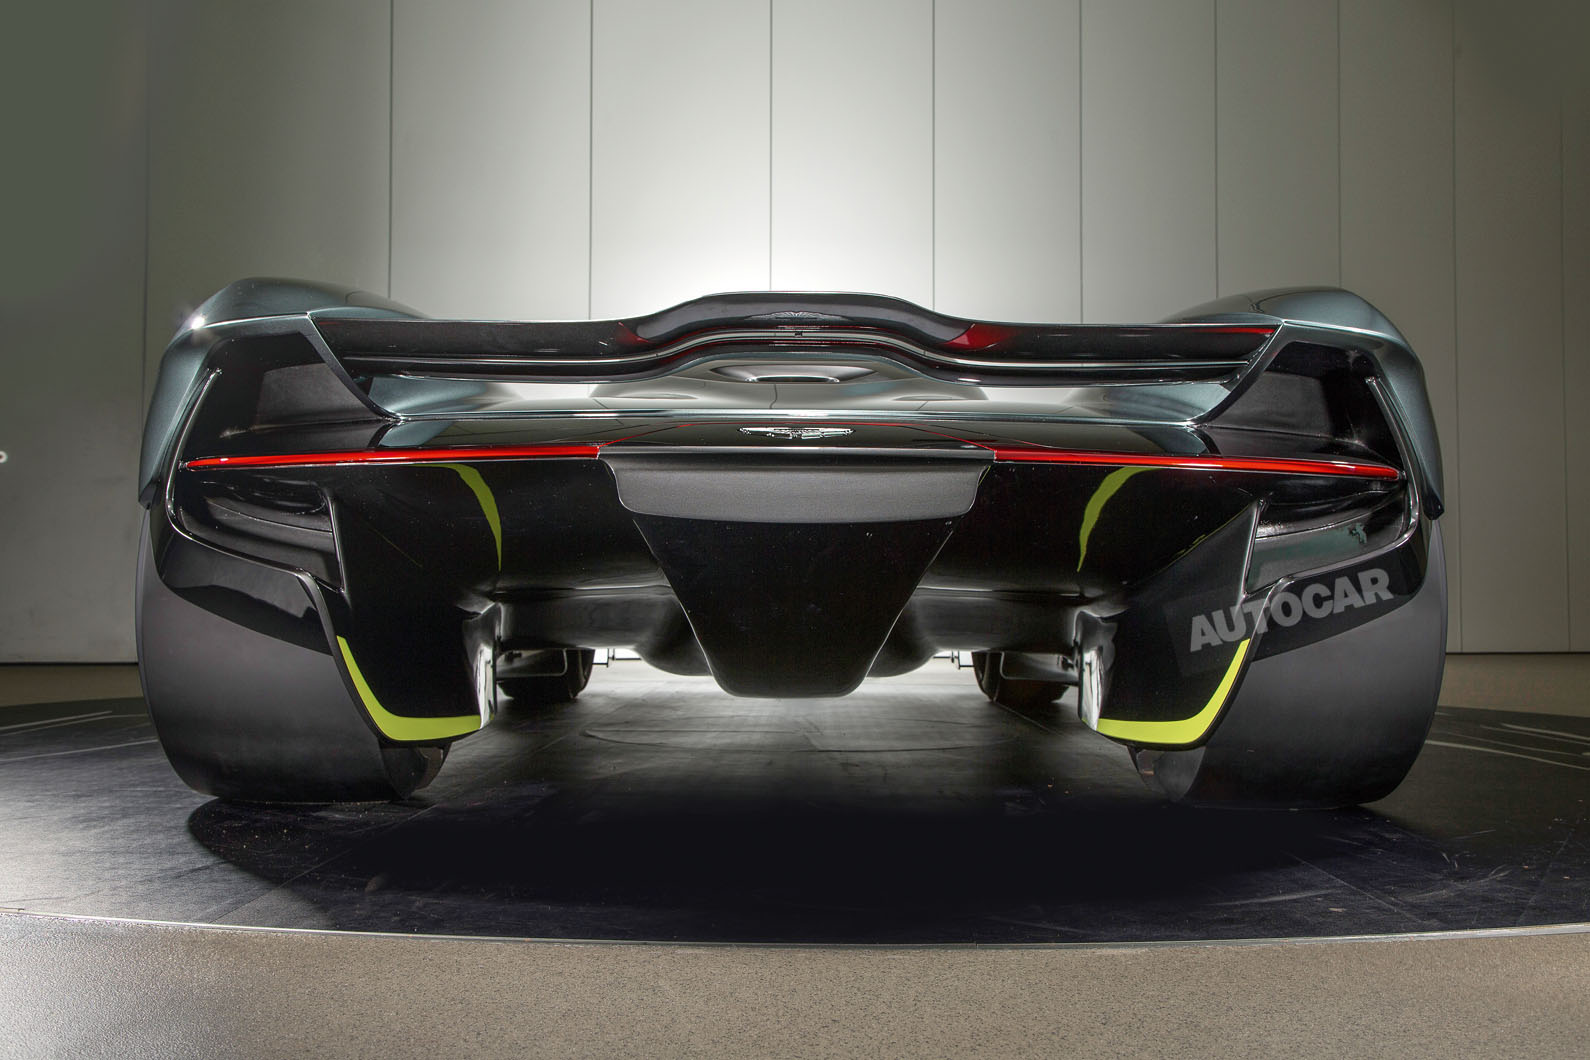 Aston Martin Valkyrie AM-RB 001 - exclusive pictures | Autocar